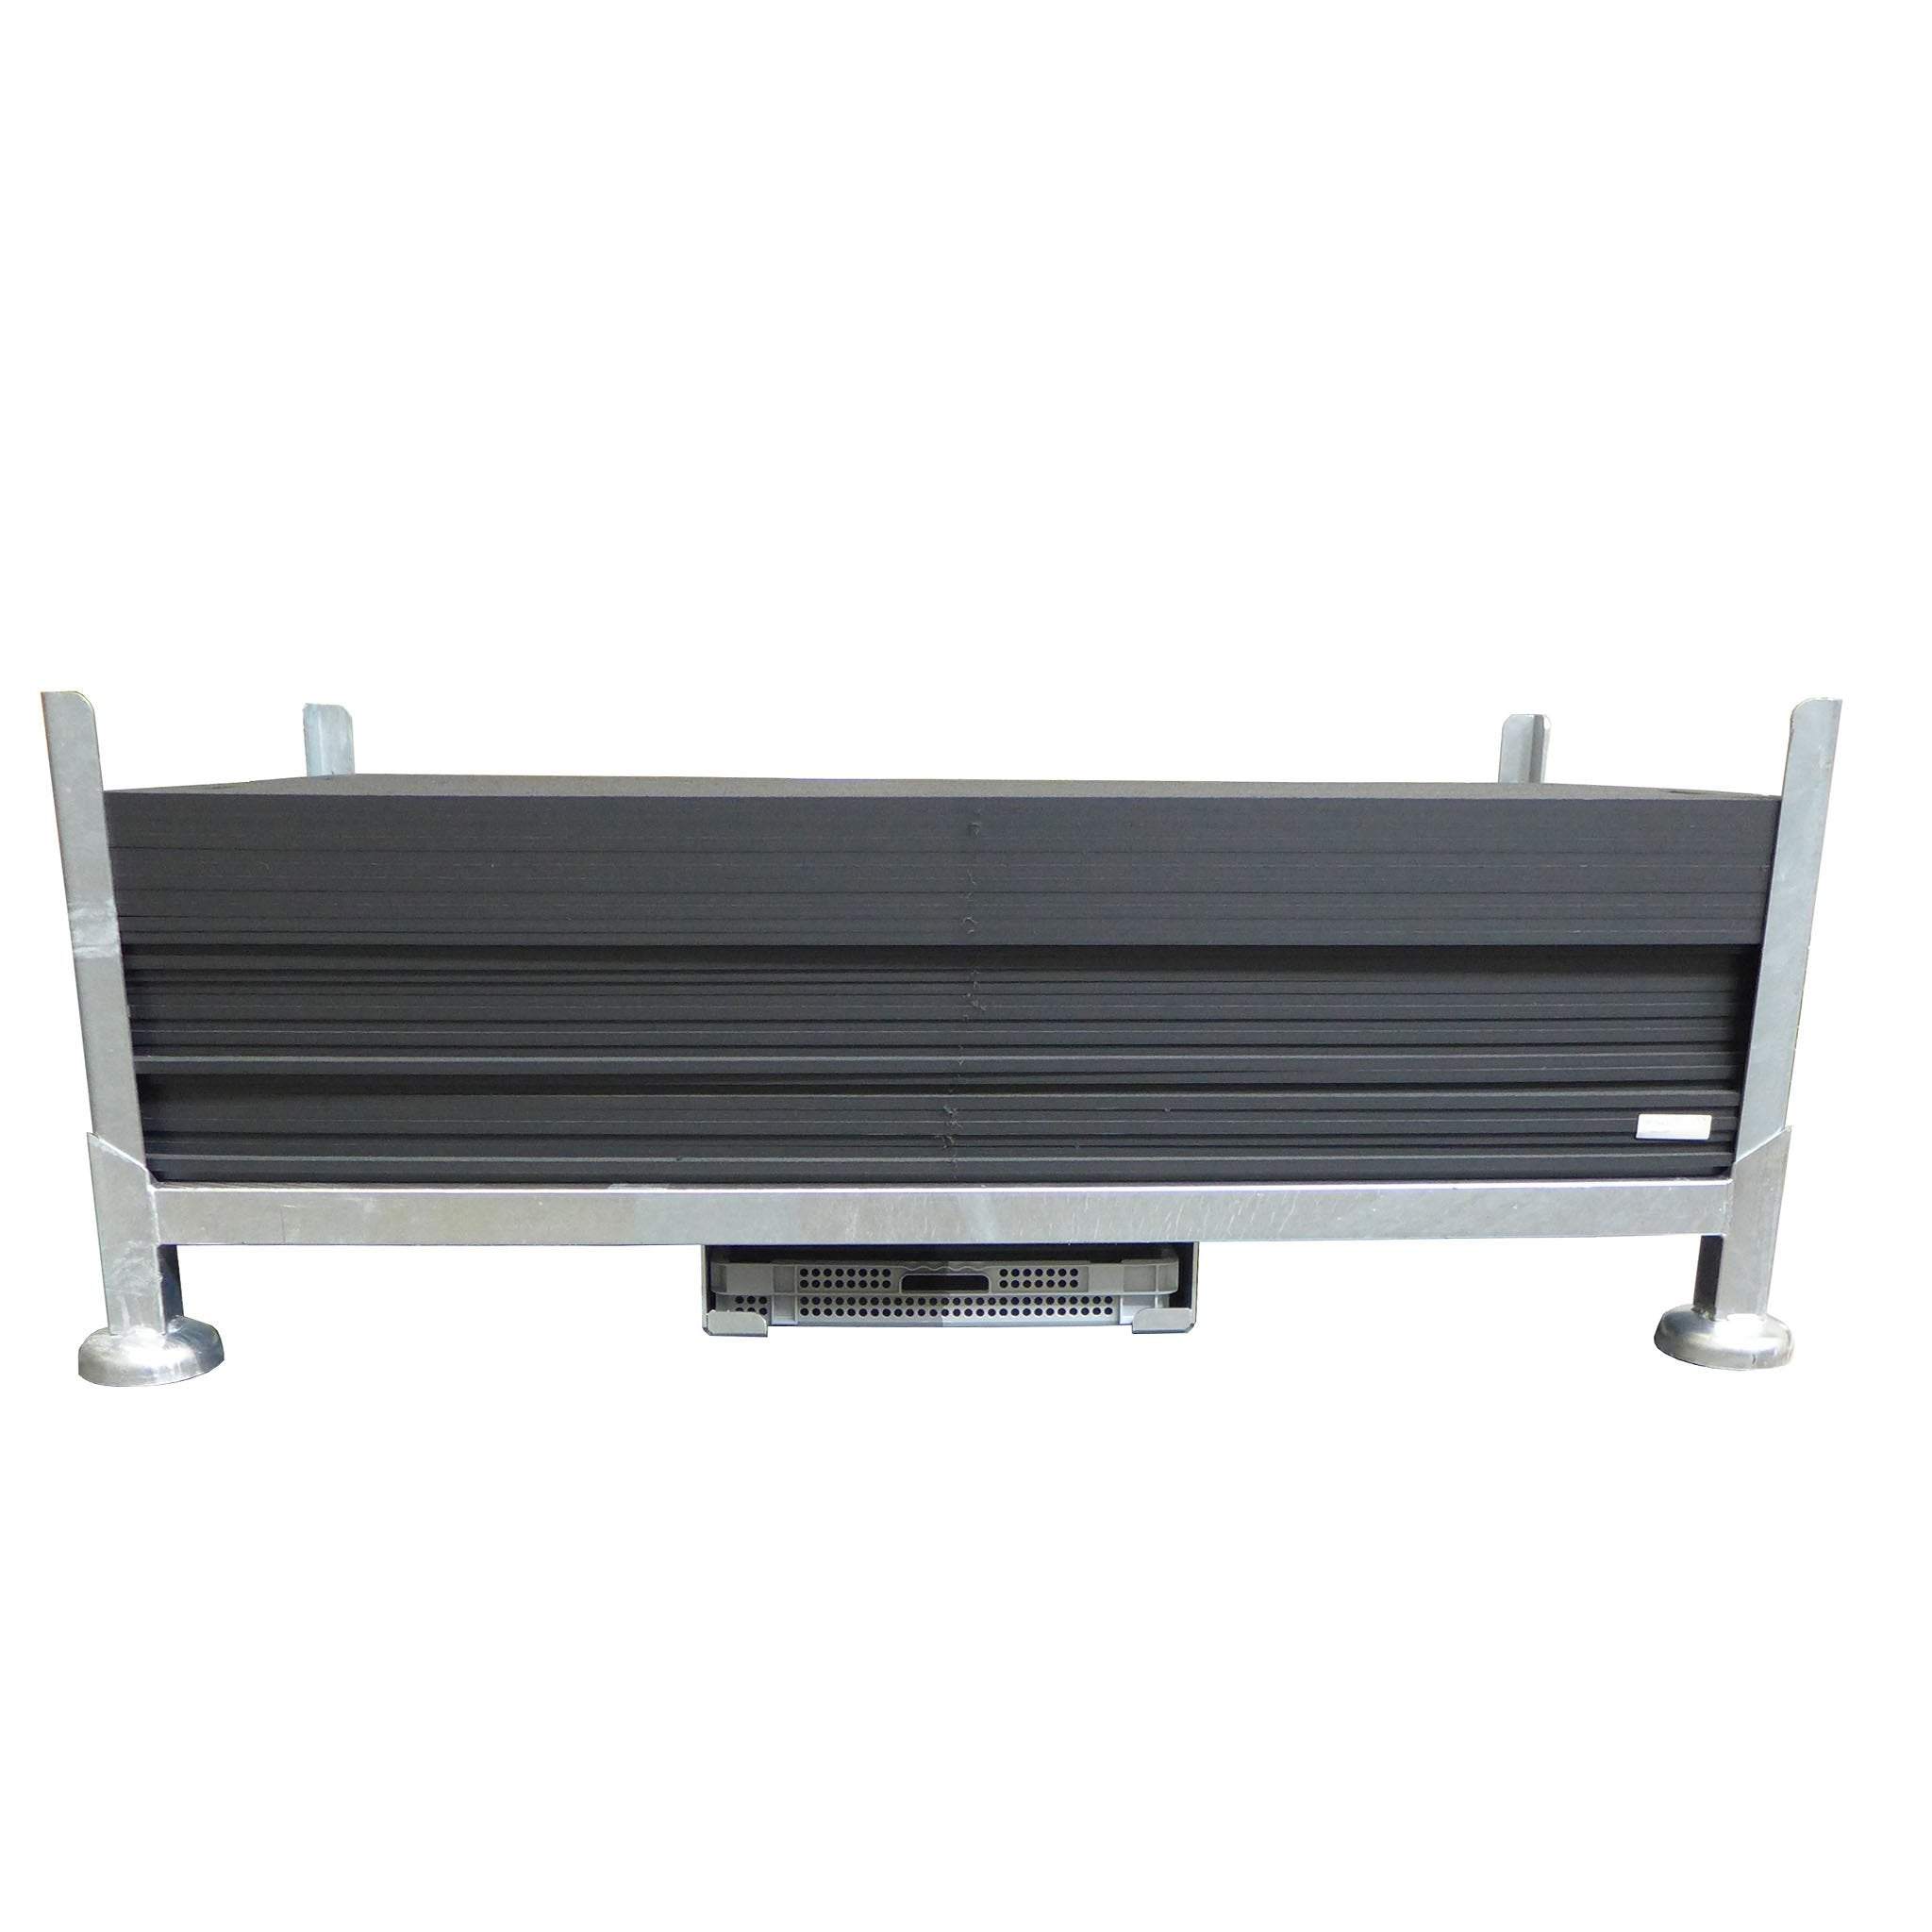 Lodax Ground Protection Flooring Storage Box - Flexible Connectors